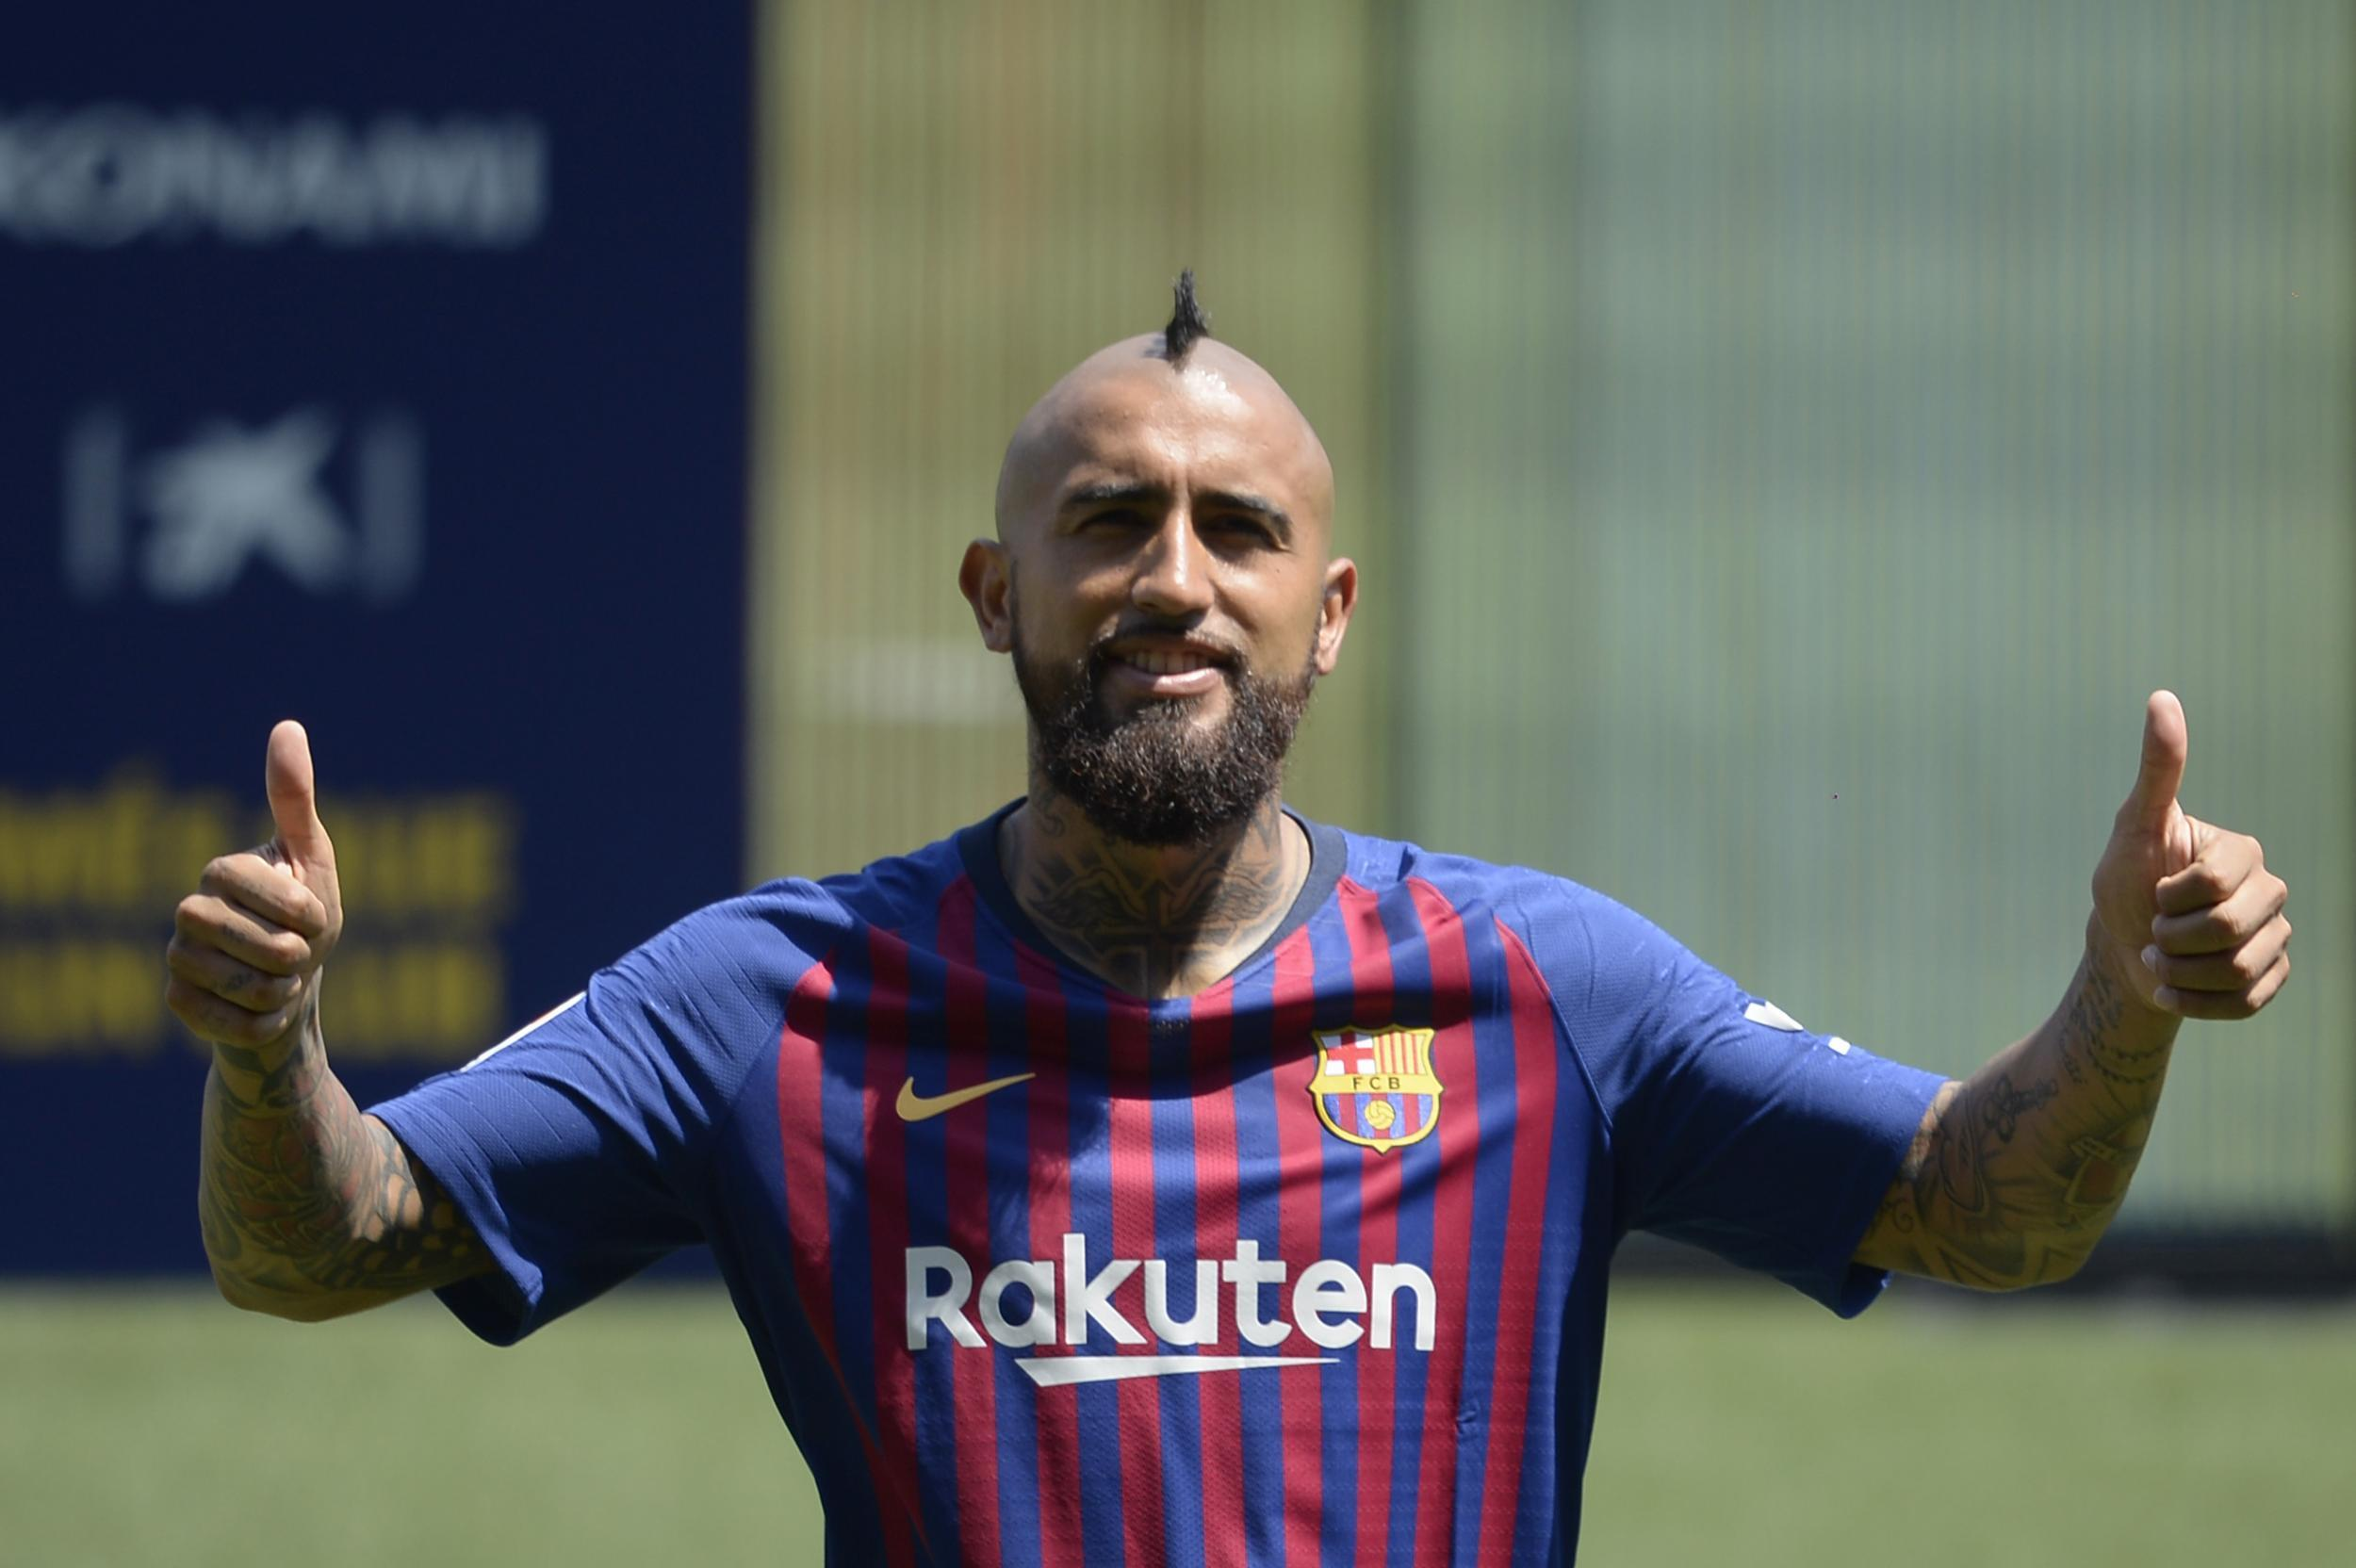 Barcelona news: Arturo Vidal transfer may confirm a change of style